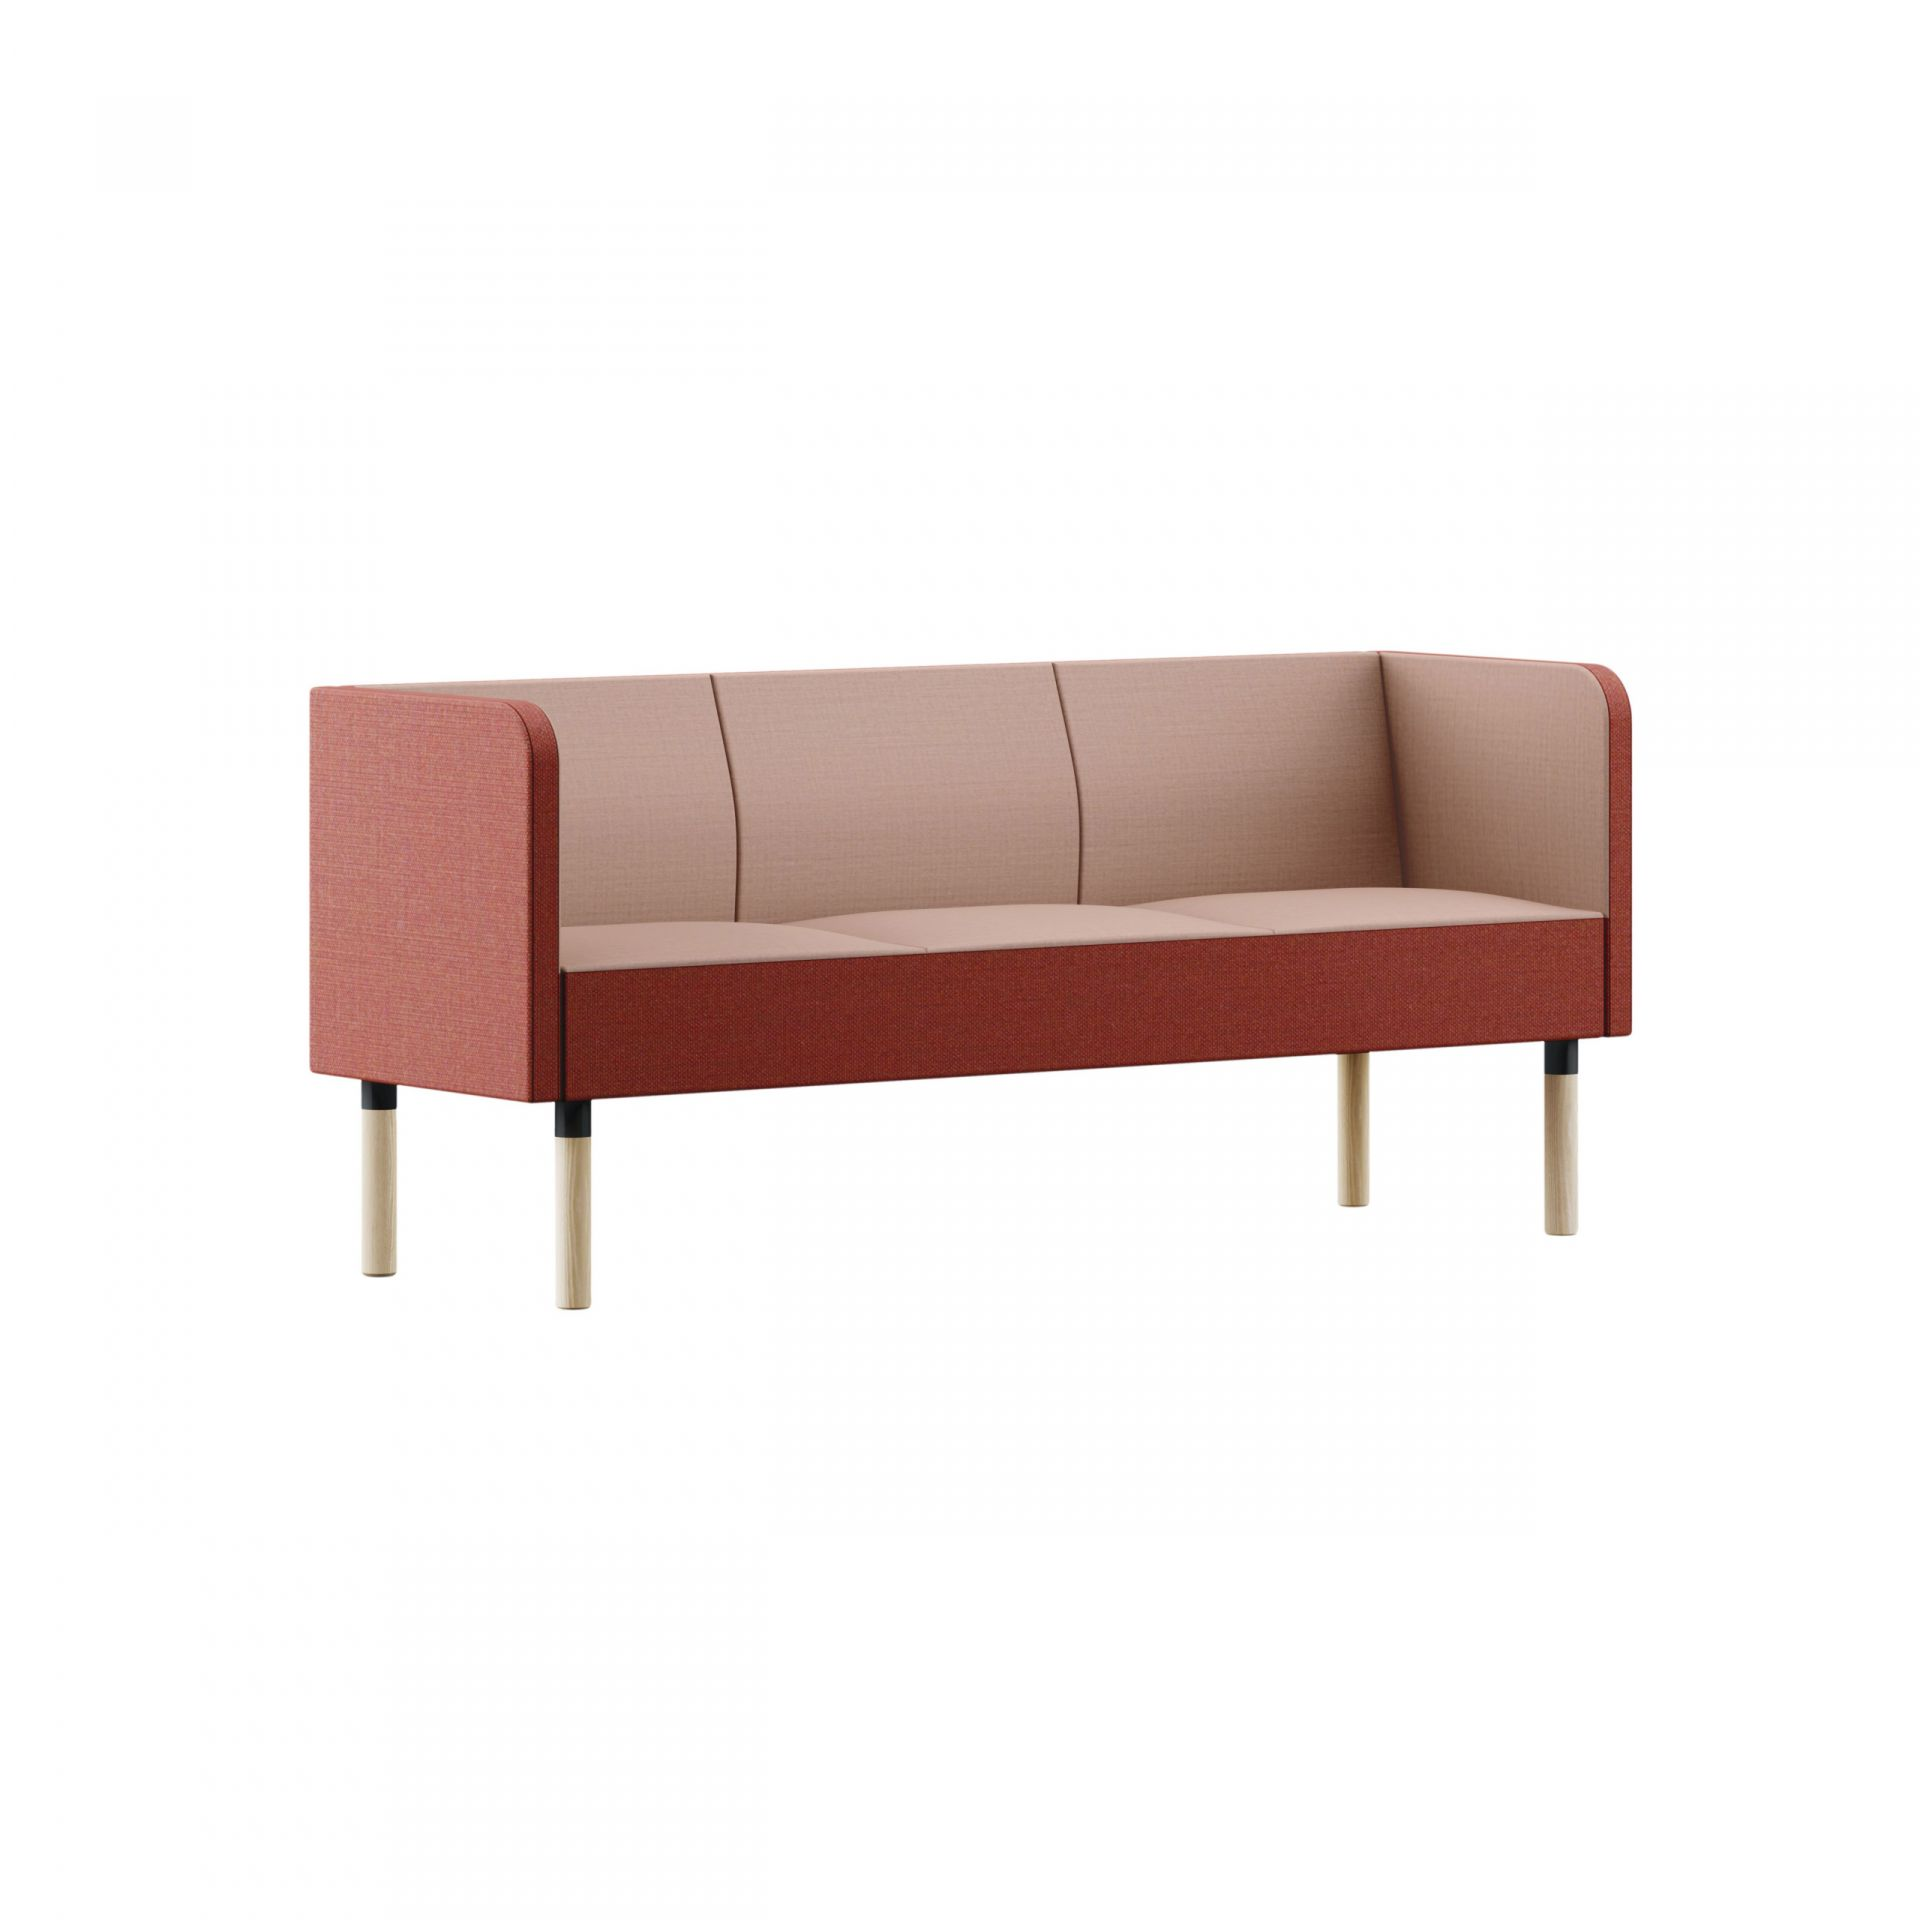 Mingle Sofa with wooden legs